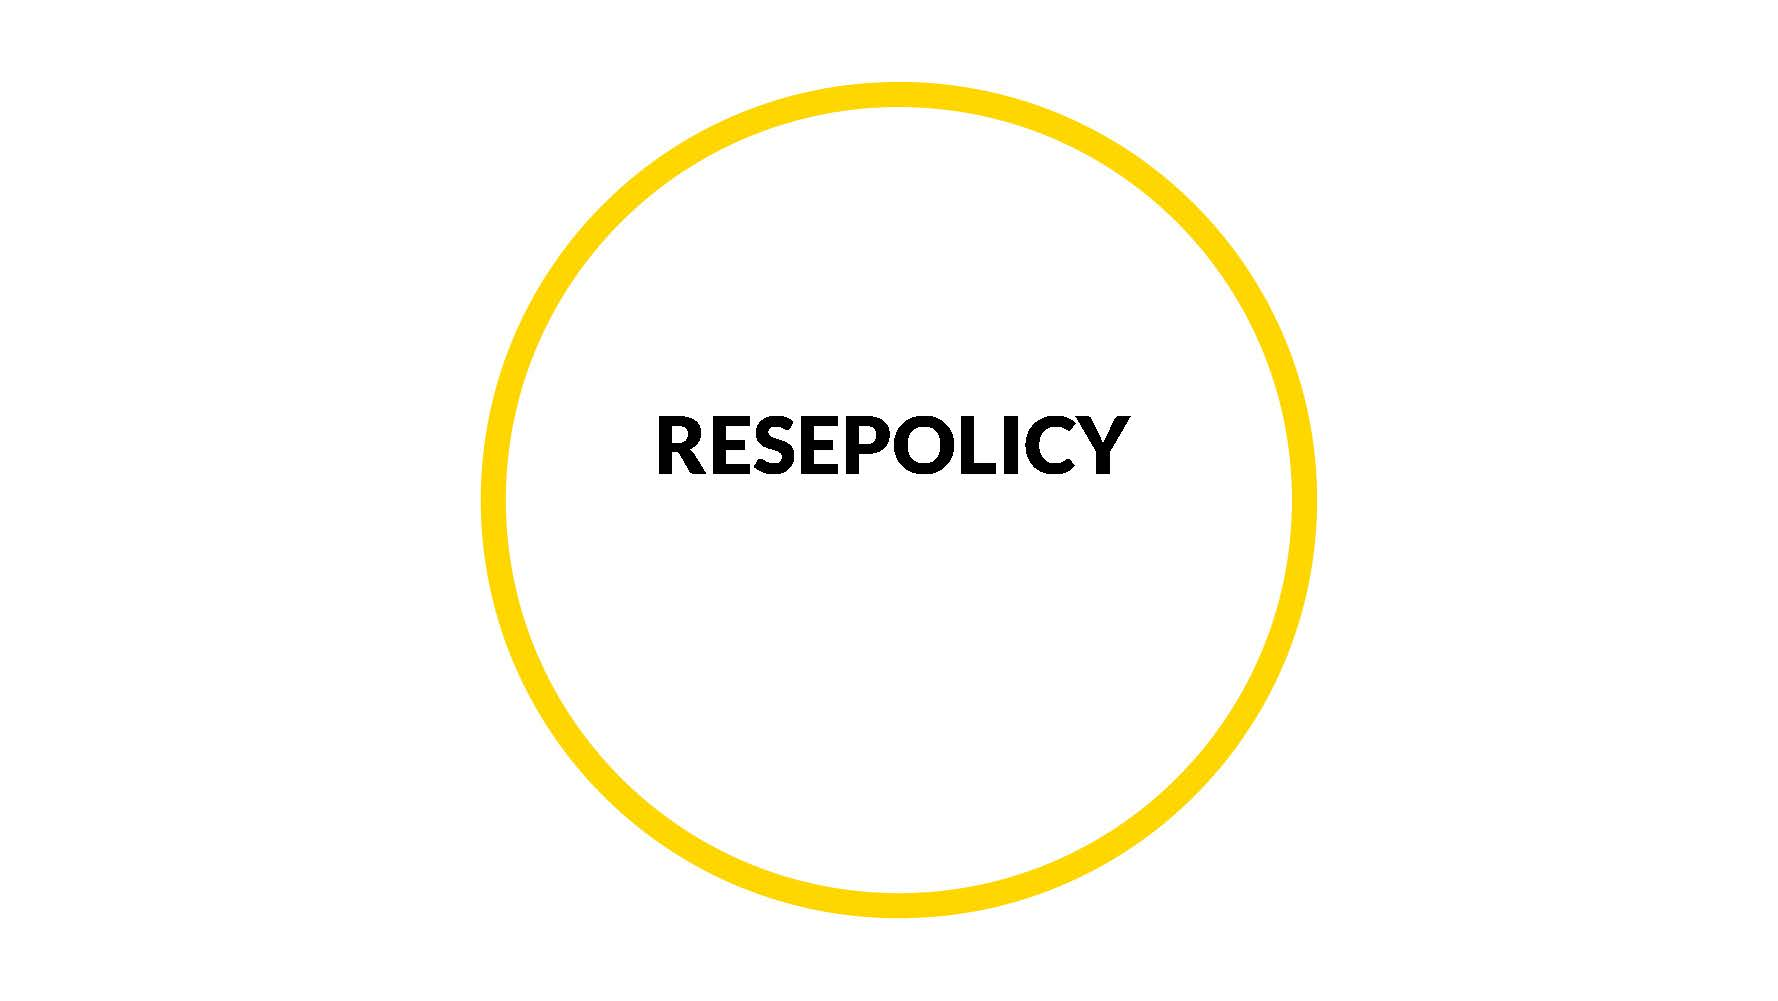 Resepolicy